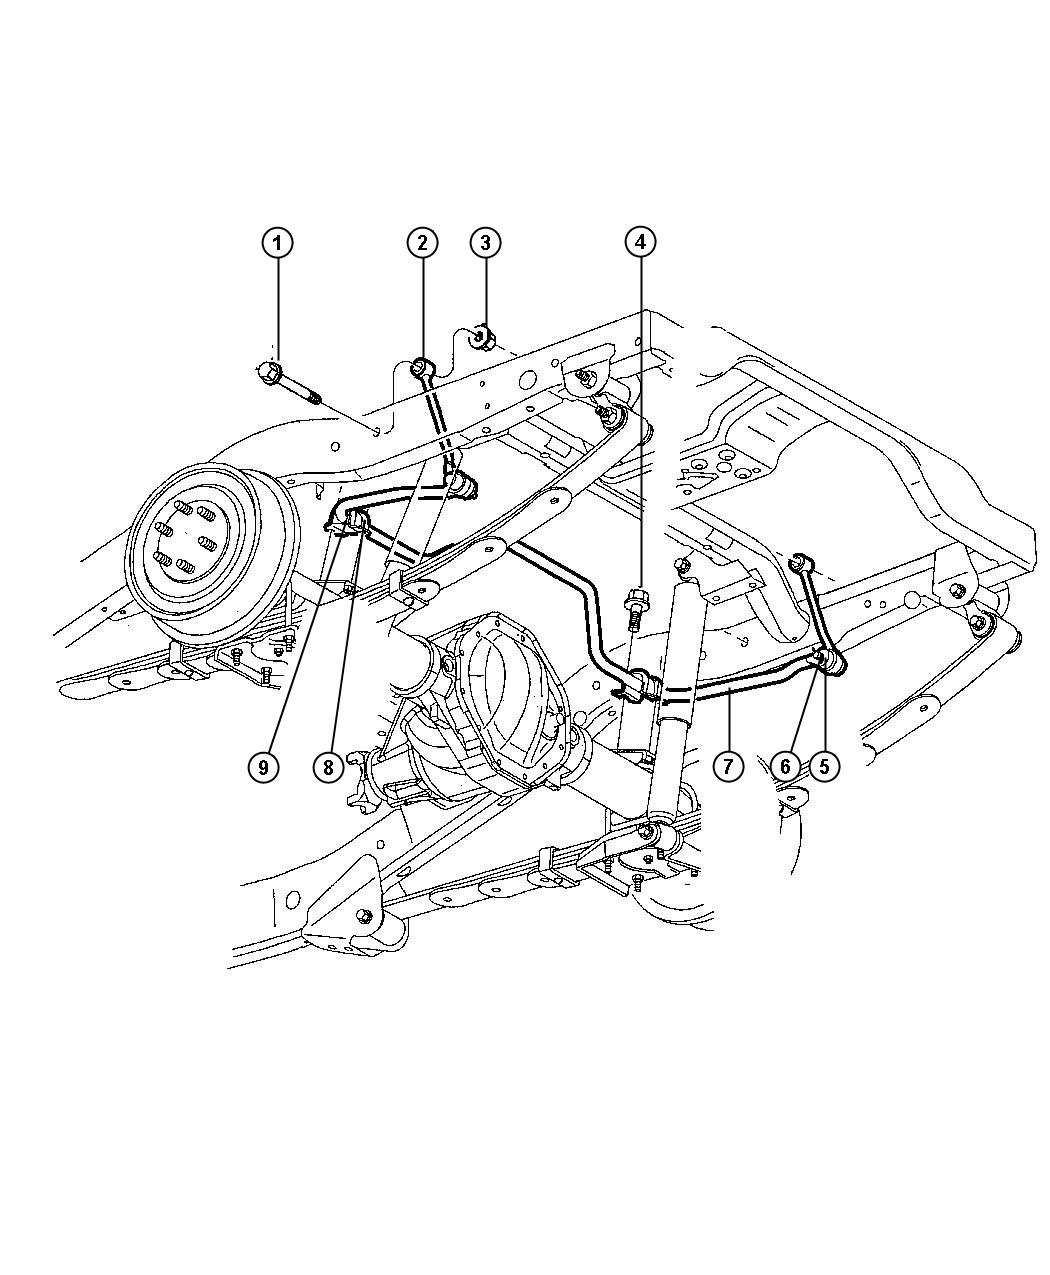 Repairguidecontent as well saturn sl1 fuel pump fuse location likewise radiator 2002 jeep grand cherokee wiring